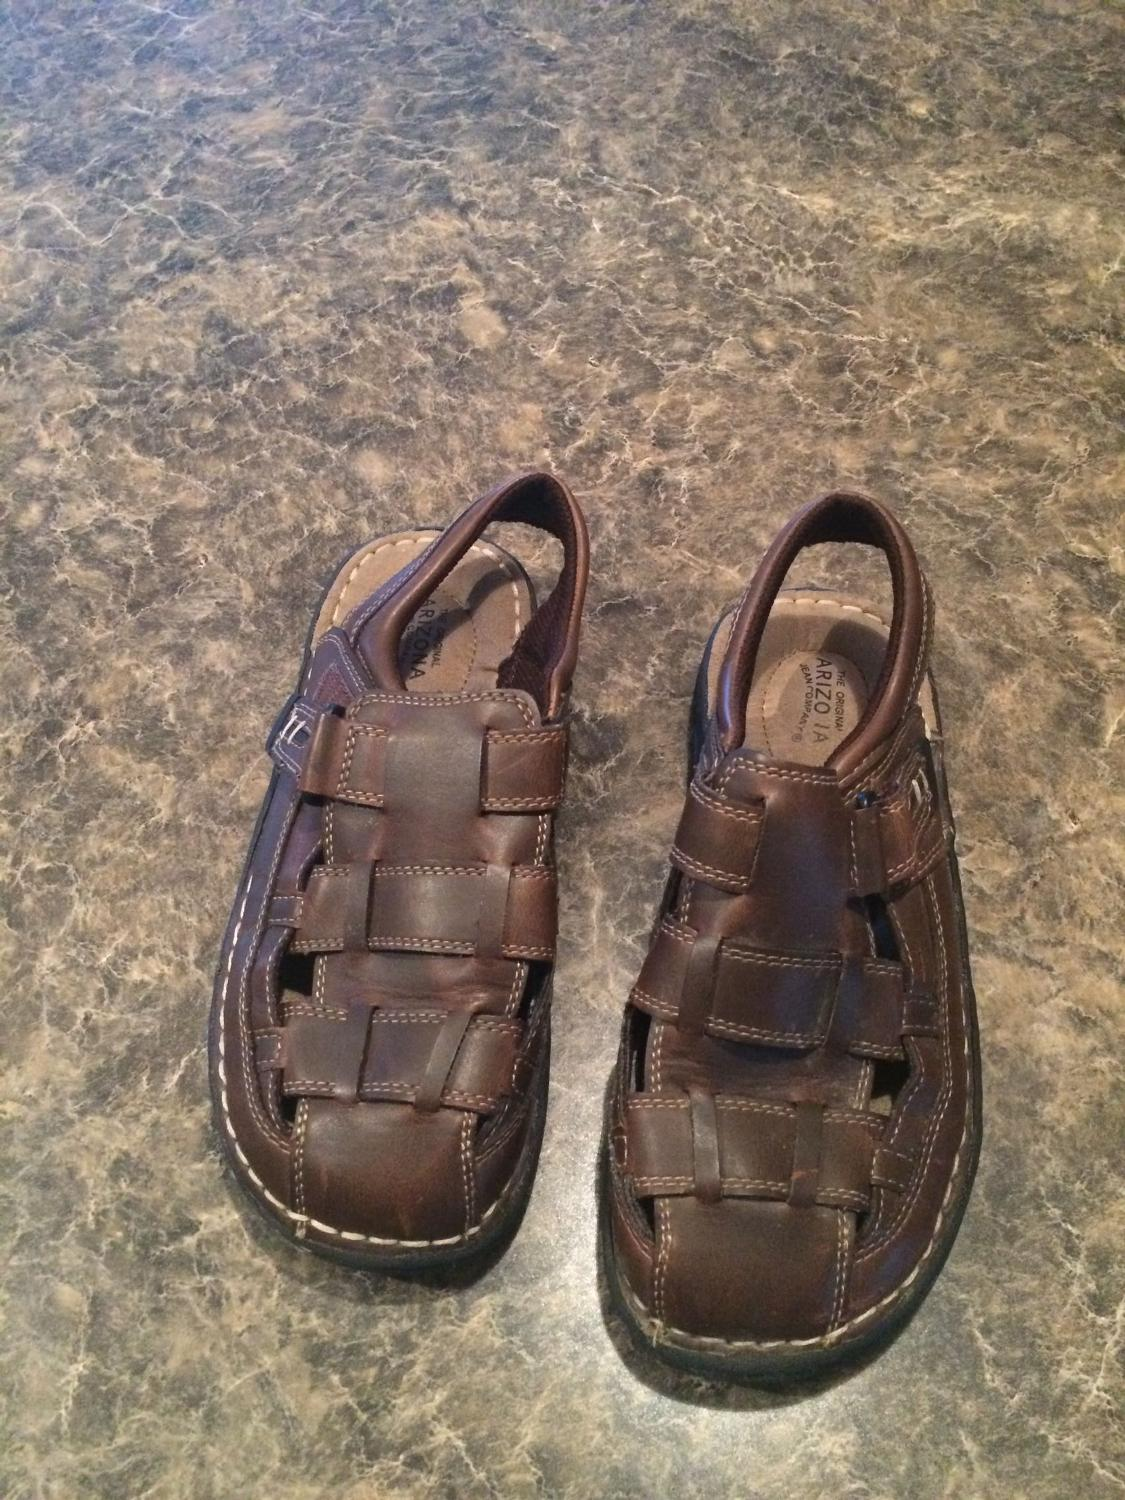 Best Youth Sandals For Sale In Minot North Dakota For 2017